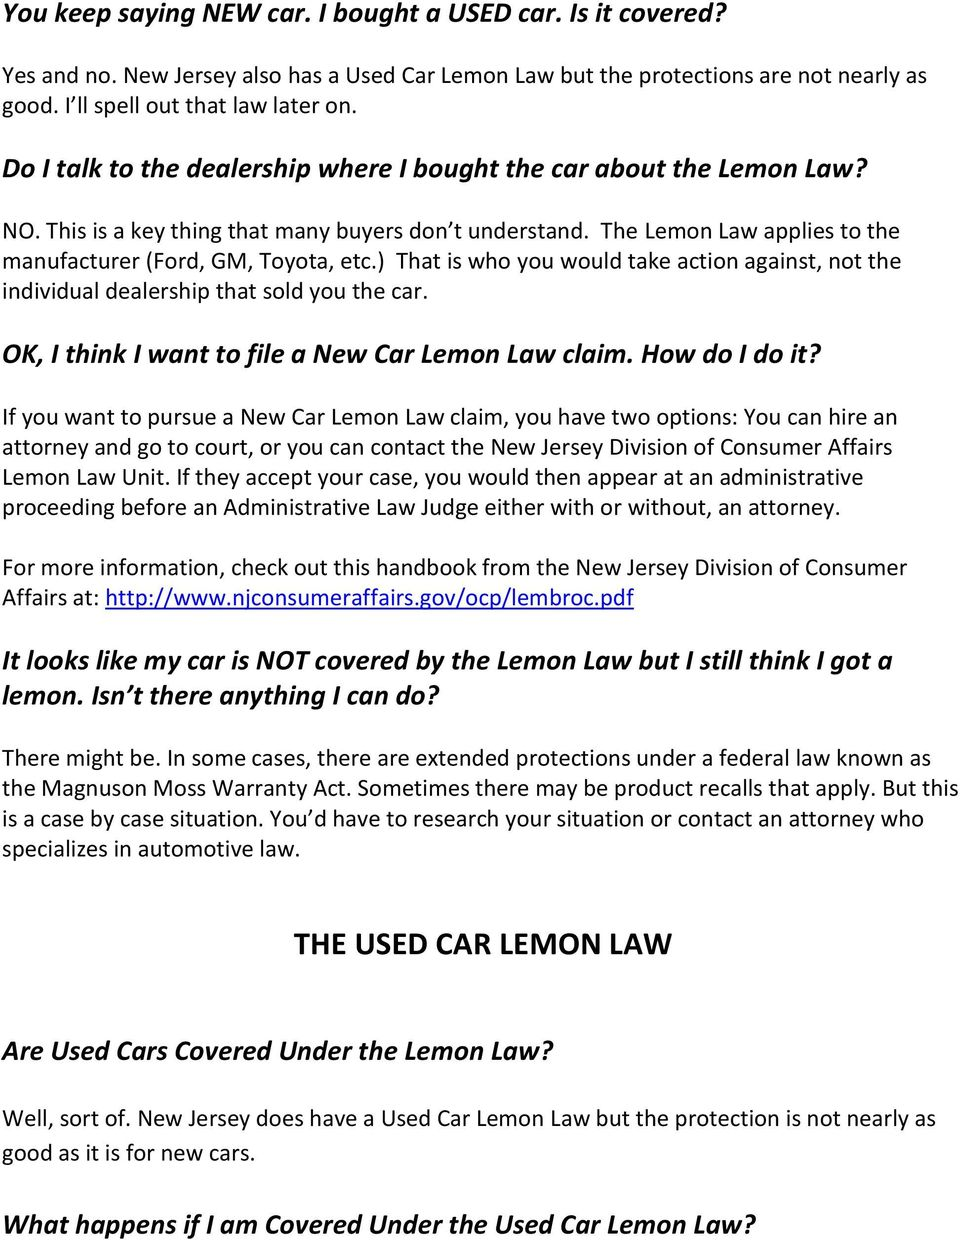 Lemon Law Virginia Used Car >> Lemon Law Virginia Used Car Upcoming New Car Release 2020